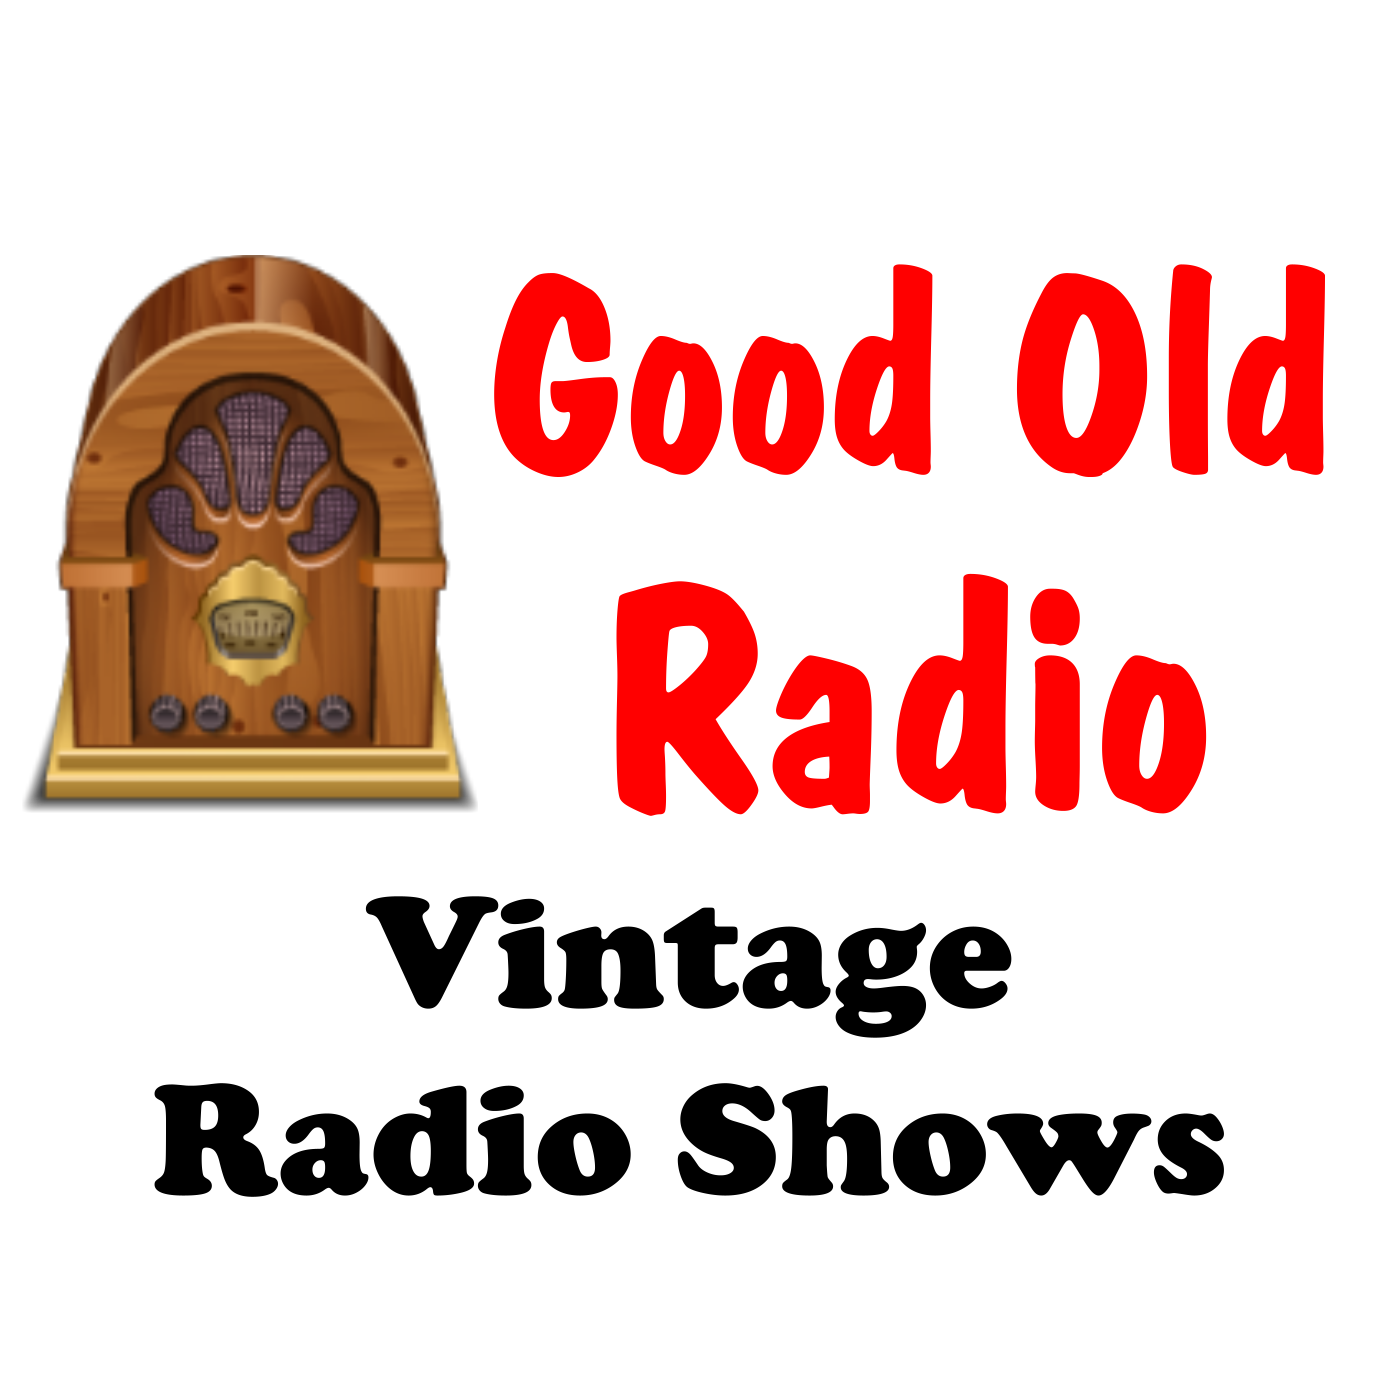 Good Old Radio - Vintage Radio Shows on Apple Podcasts